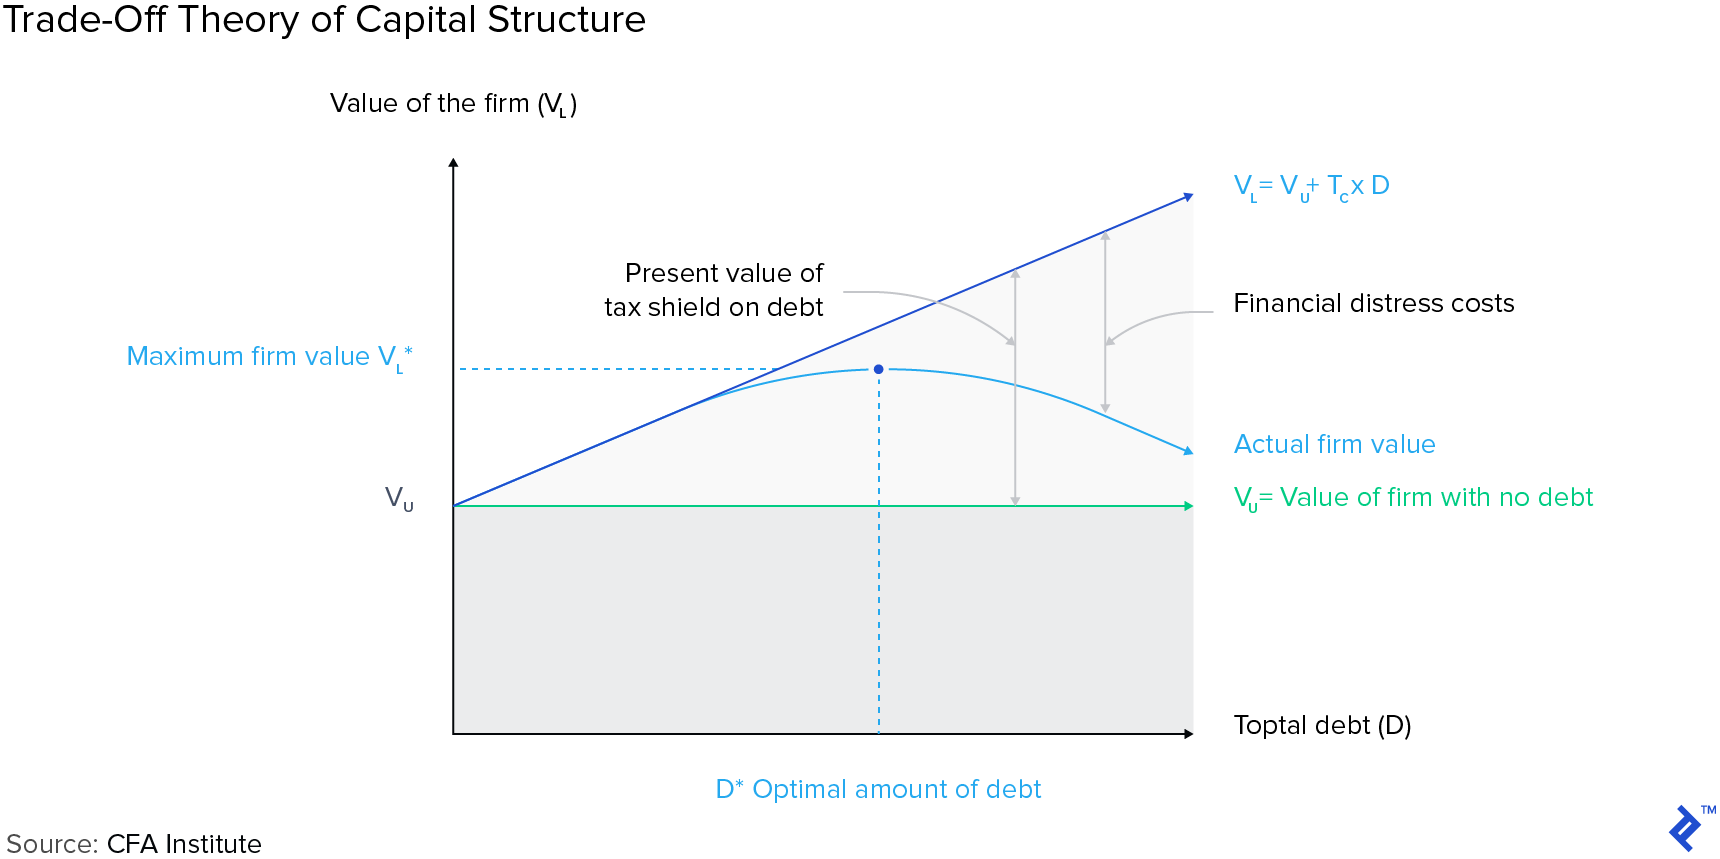 Graph: Trade-off Theory of Capital Structure